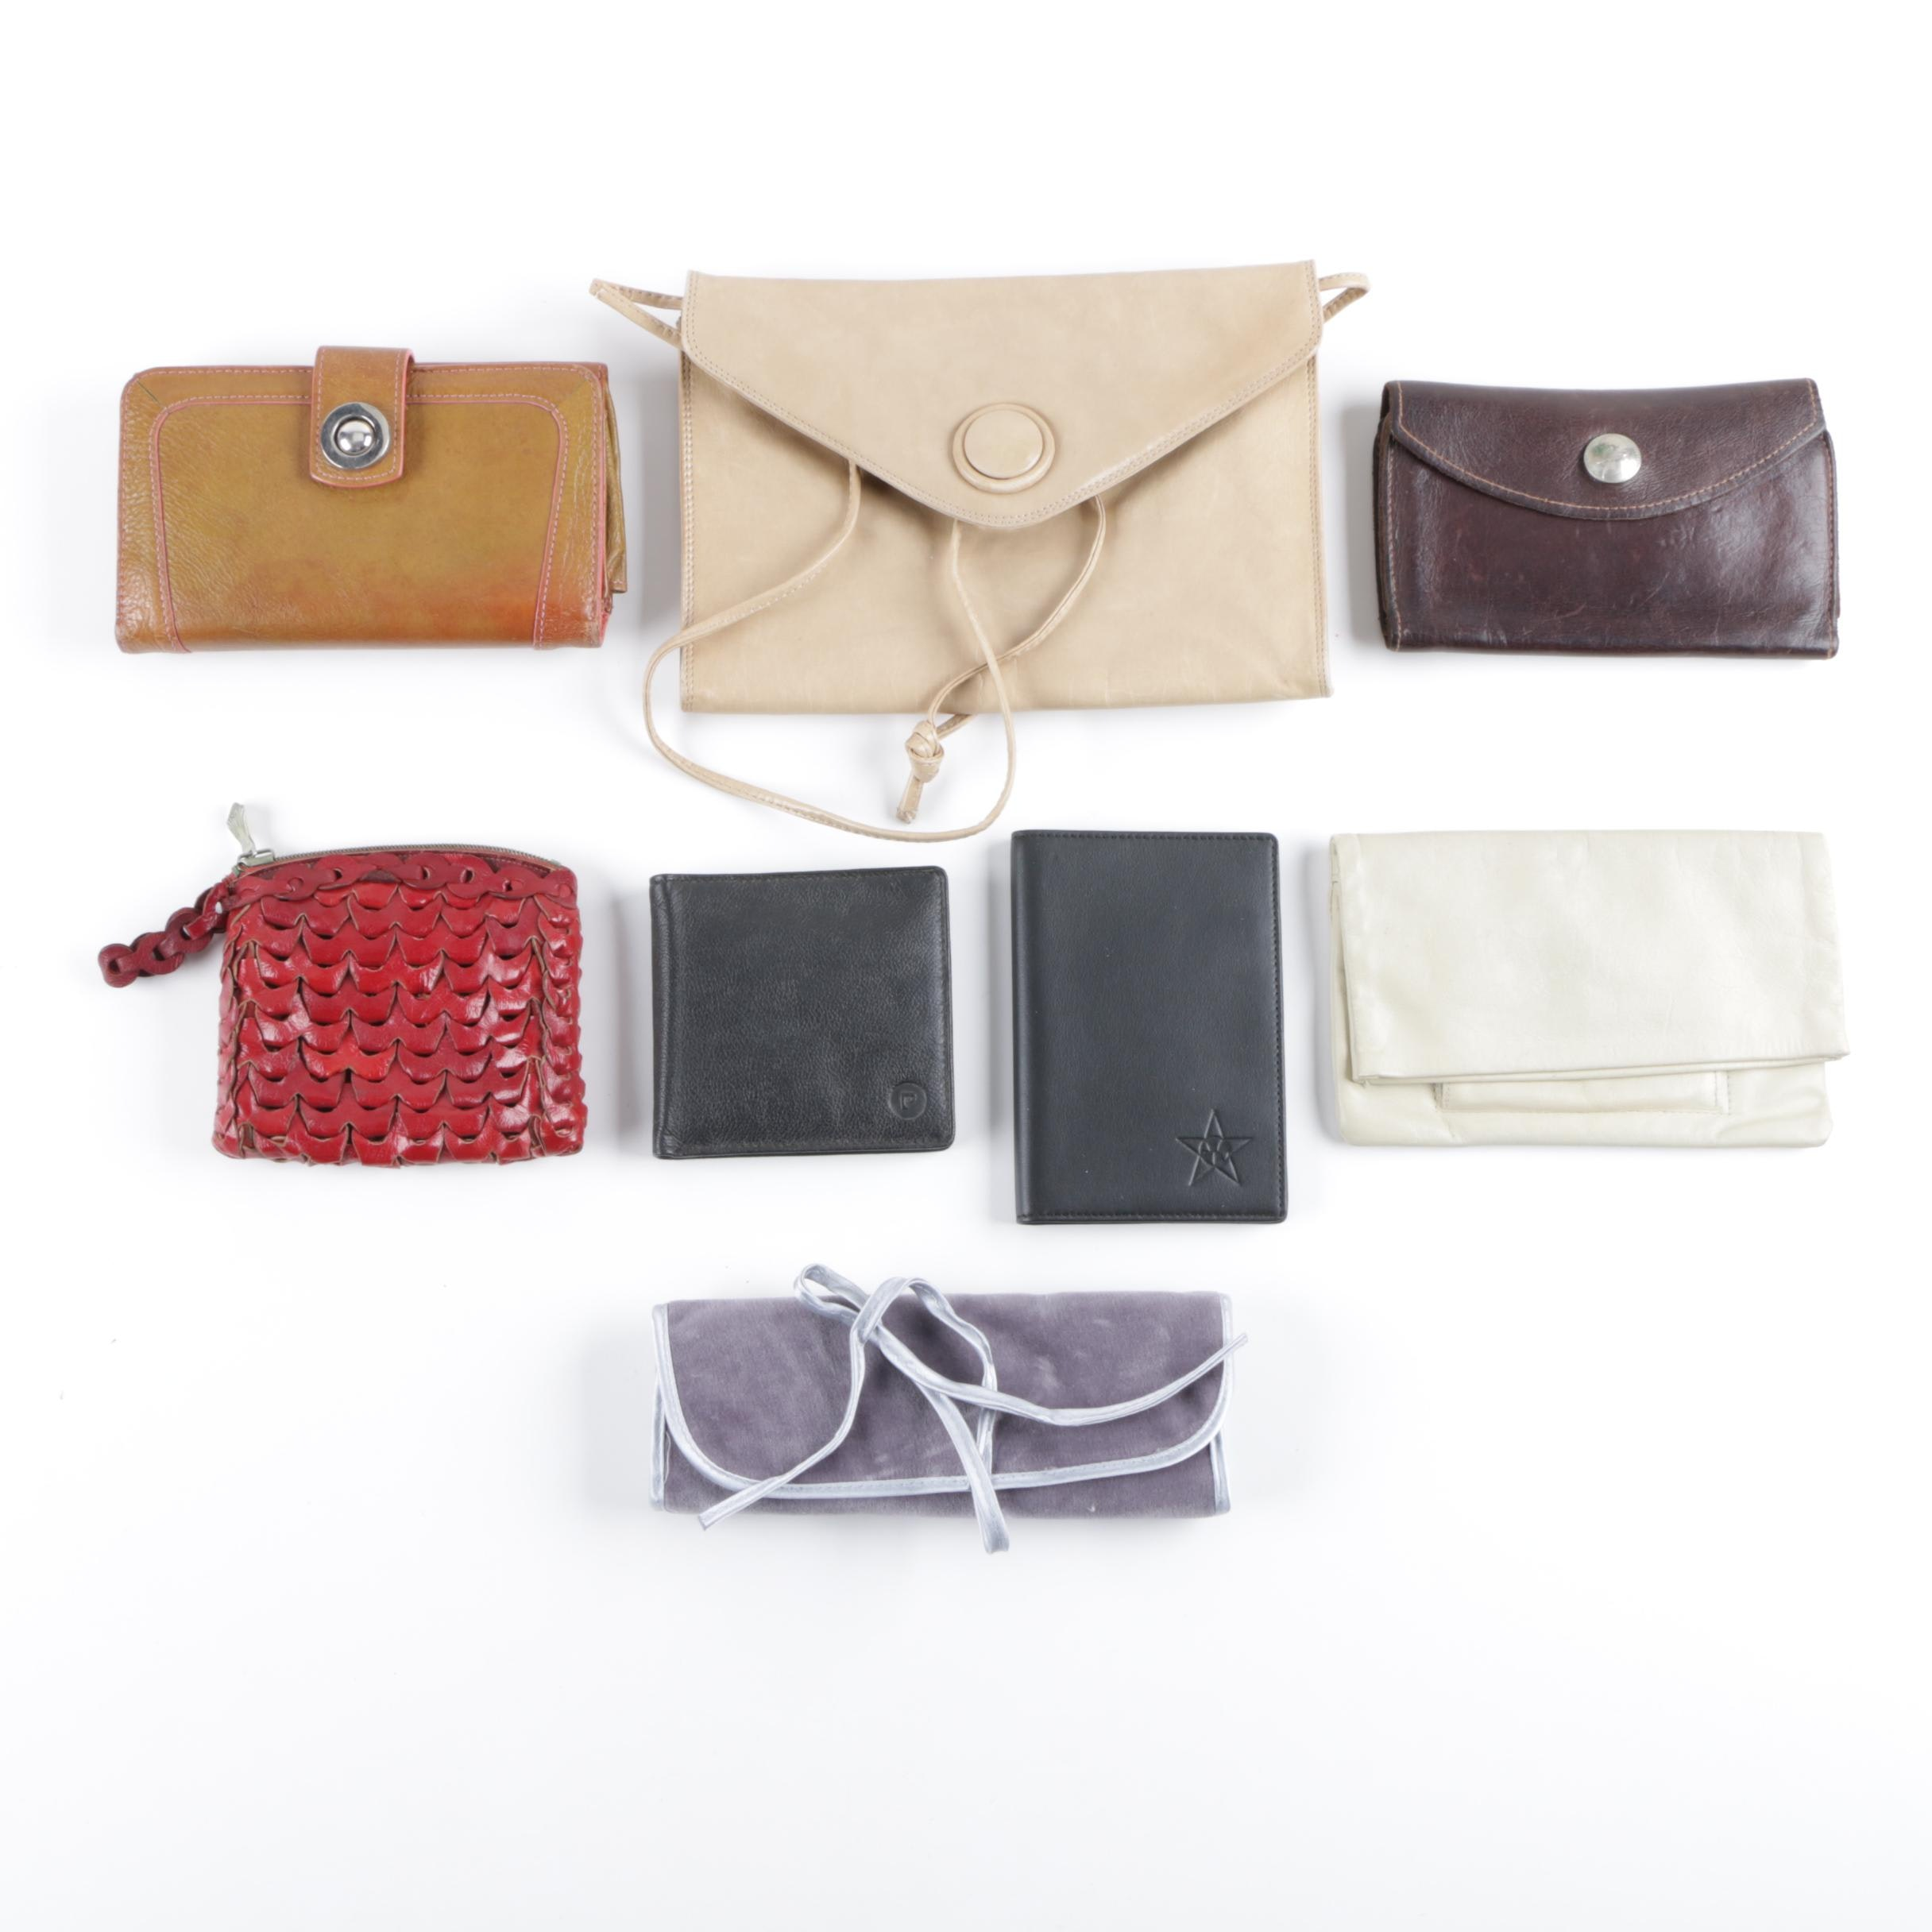 Vintage Leather Wallets and Handbags Including Reuso Reugiaro and Pierre Cardin